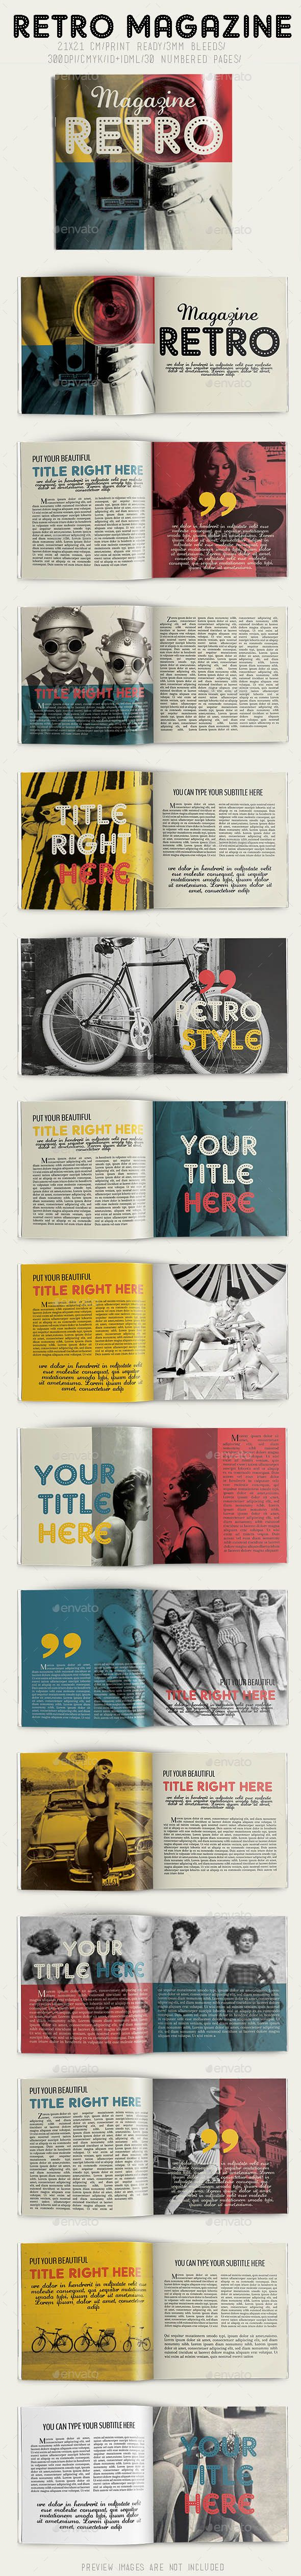 205 best Editorial images on Pinterest | Editorial design, Layout ...